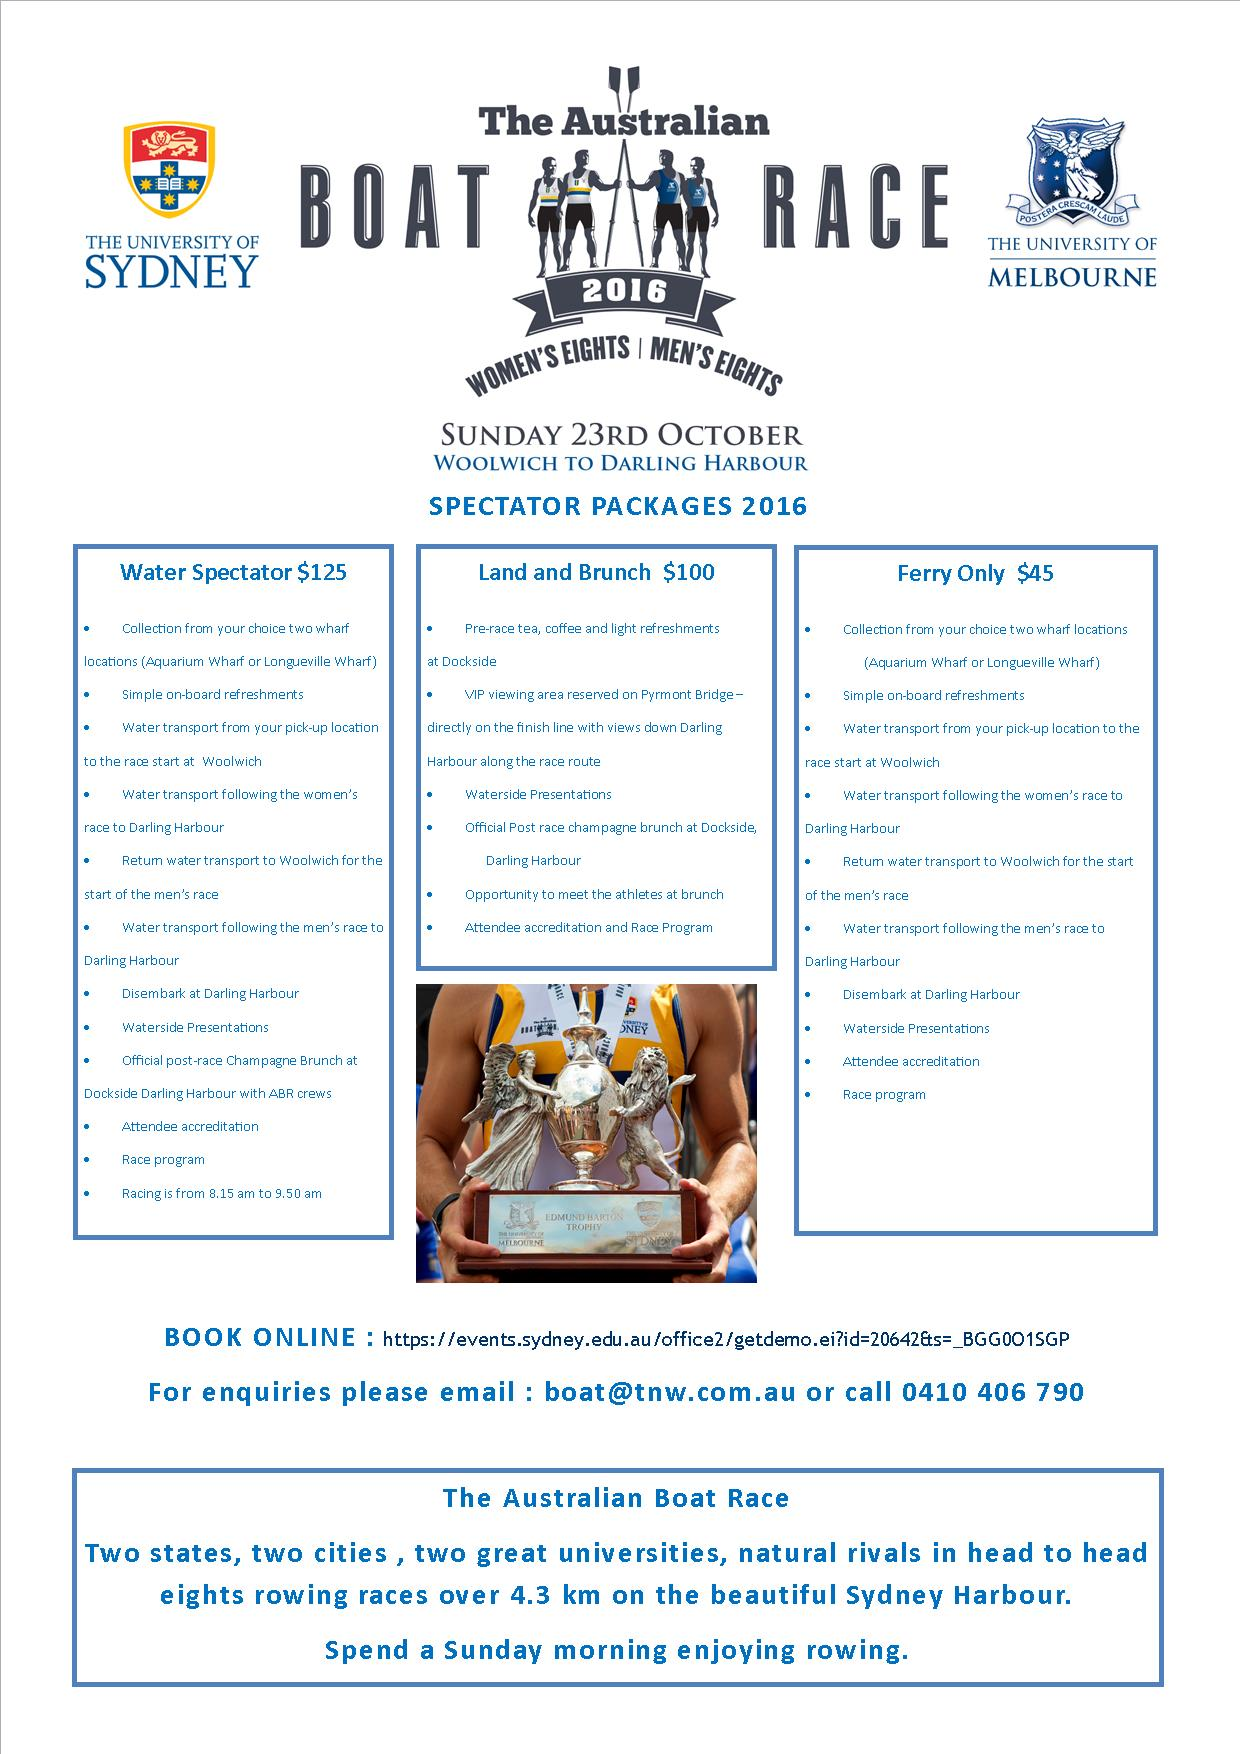 Australian Boat Race 2016 Spectator Packages V1 24 June 2016